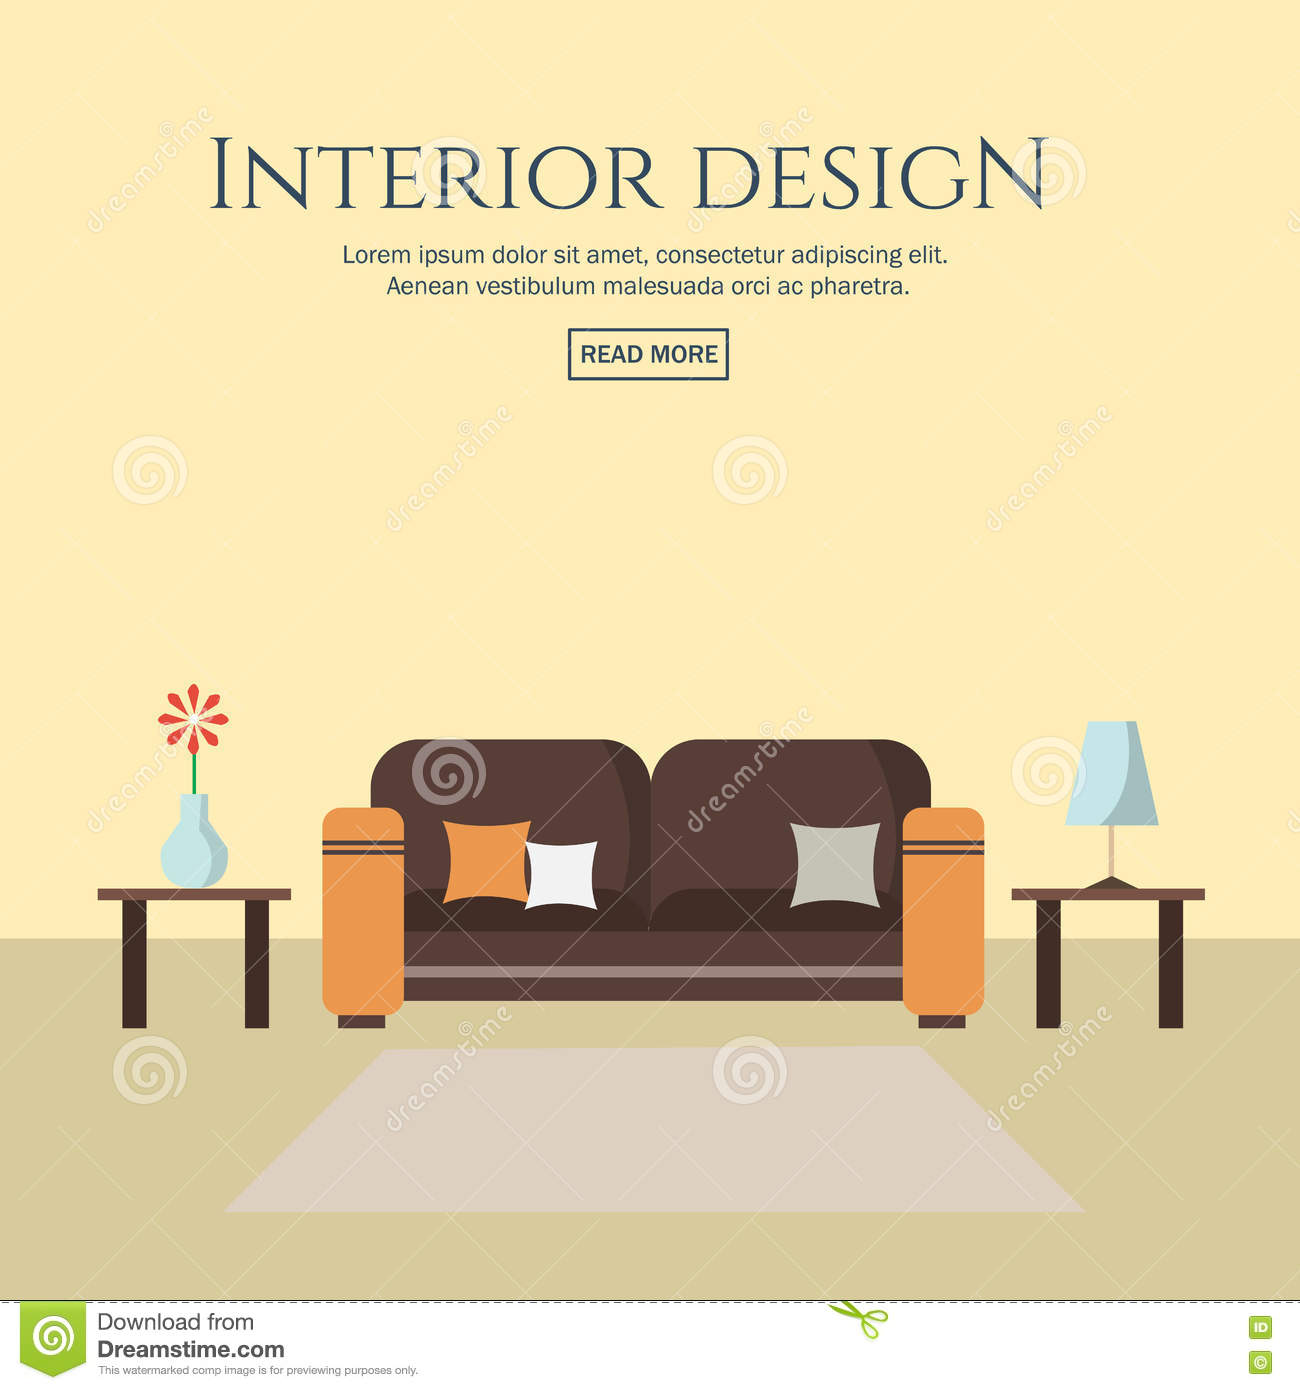 Interior design flat style concept set stock vector for Interior design images vector